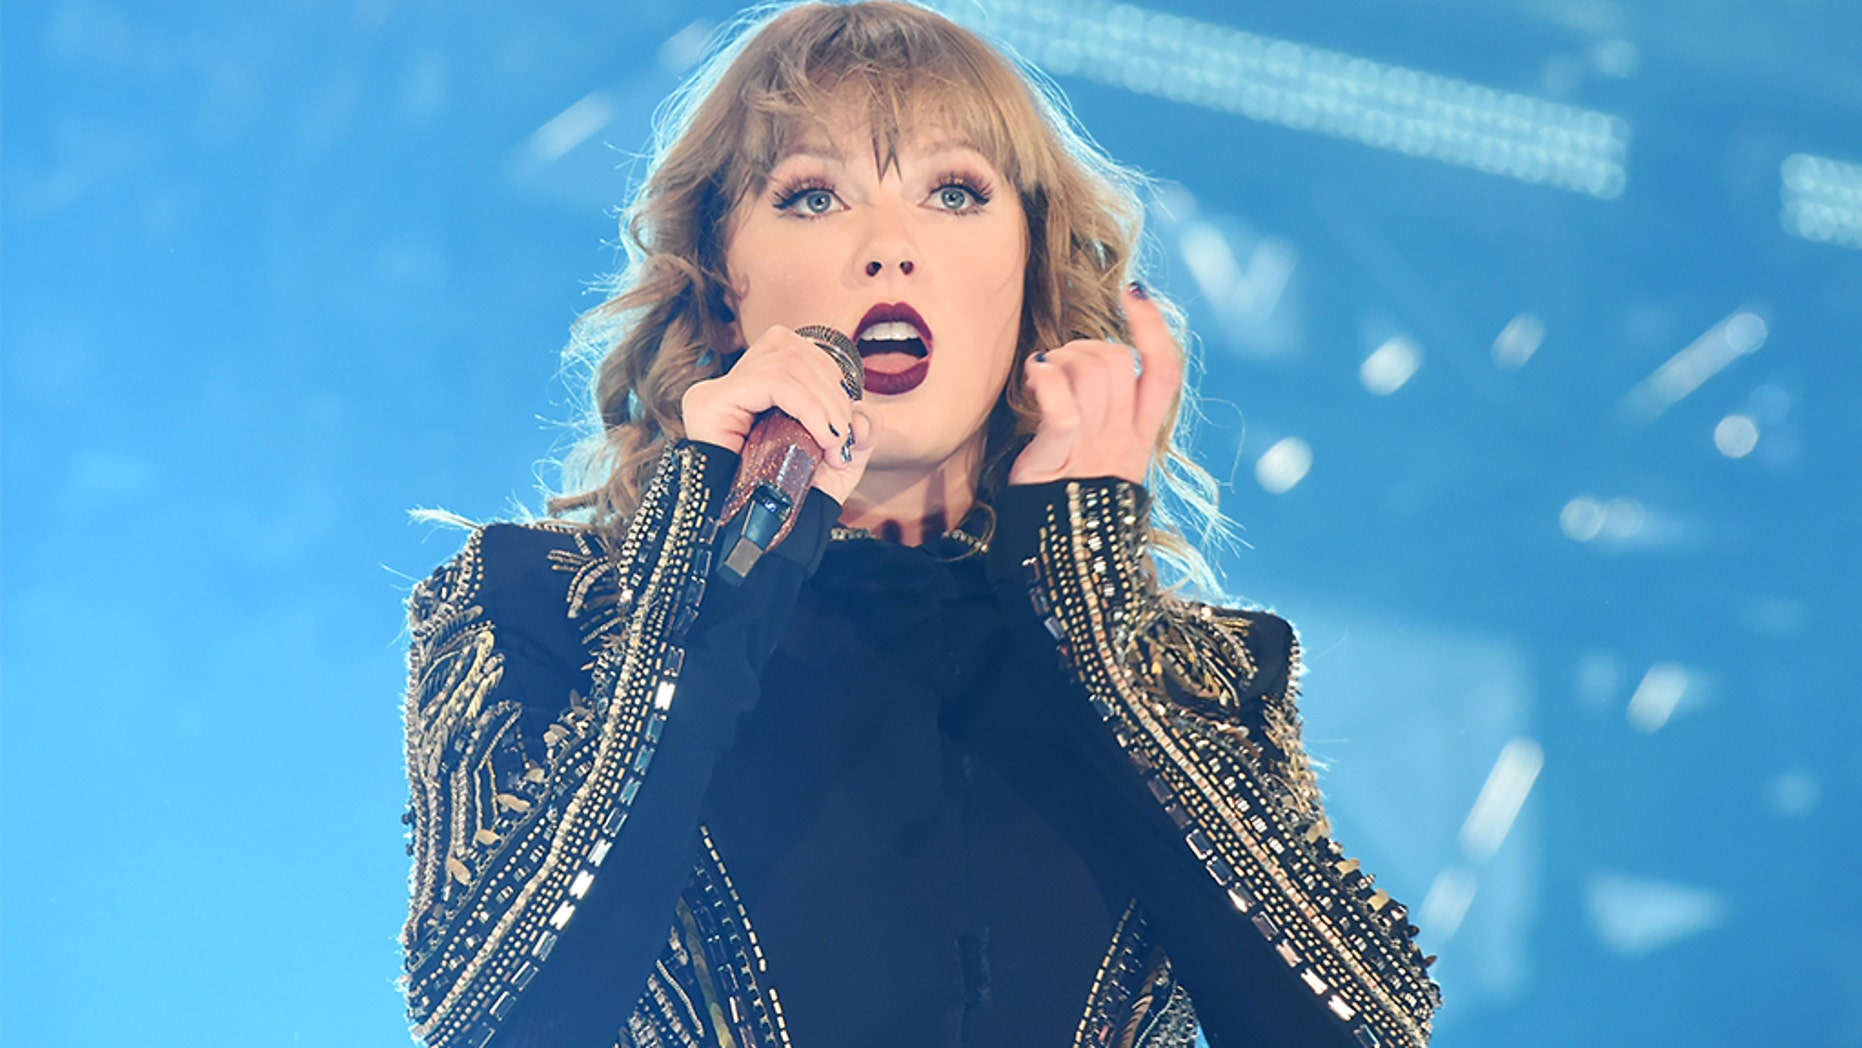 Taylor Swift concert had facial recognition scan for stalkers